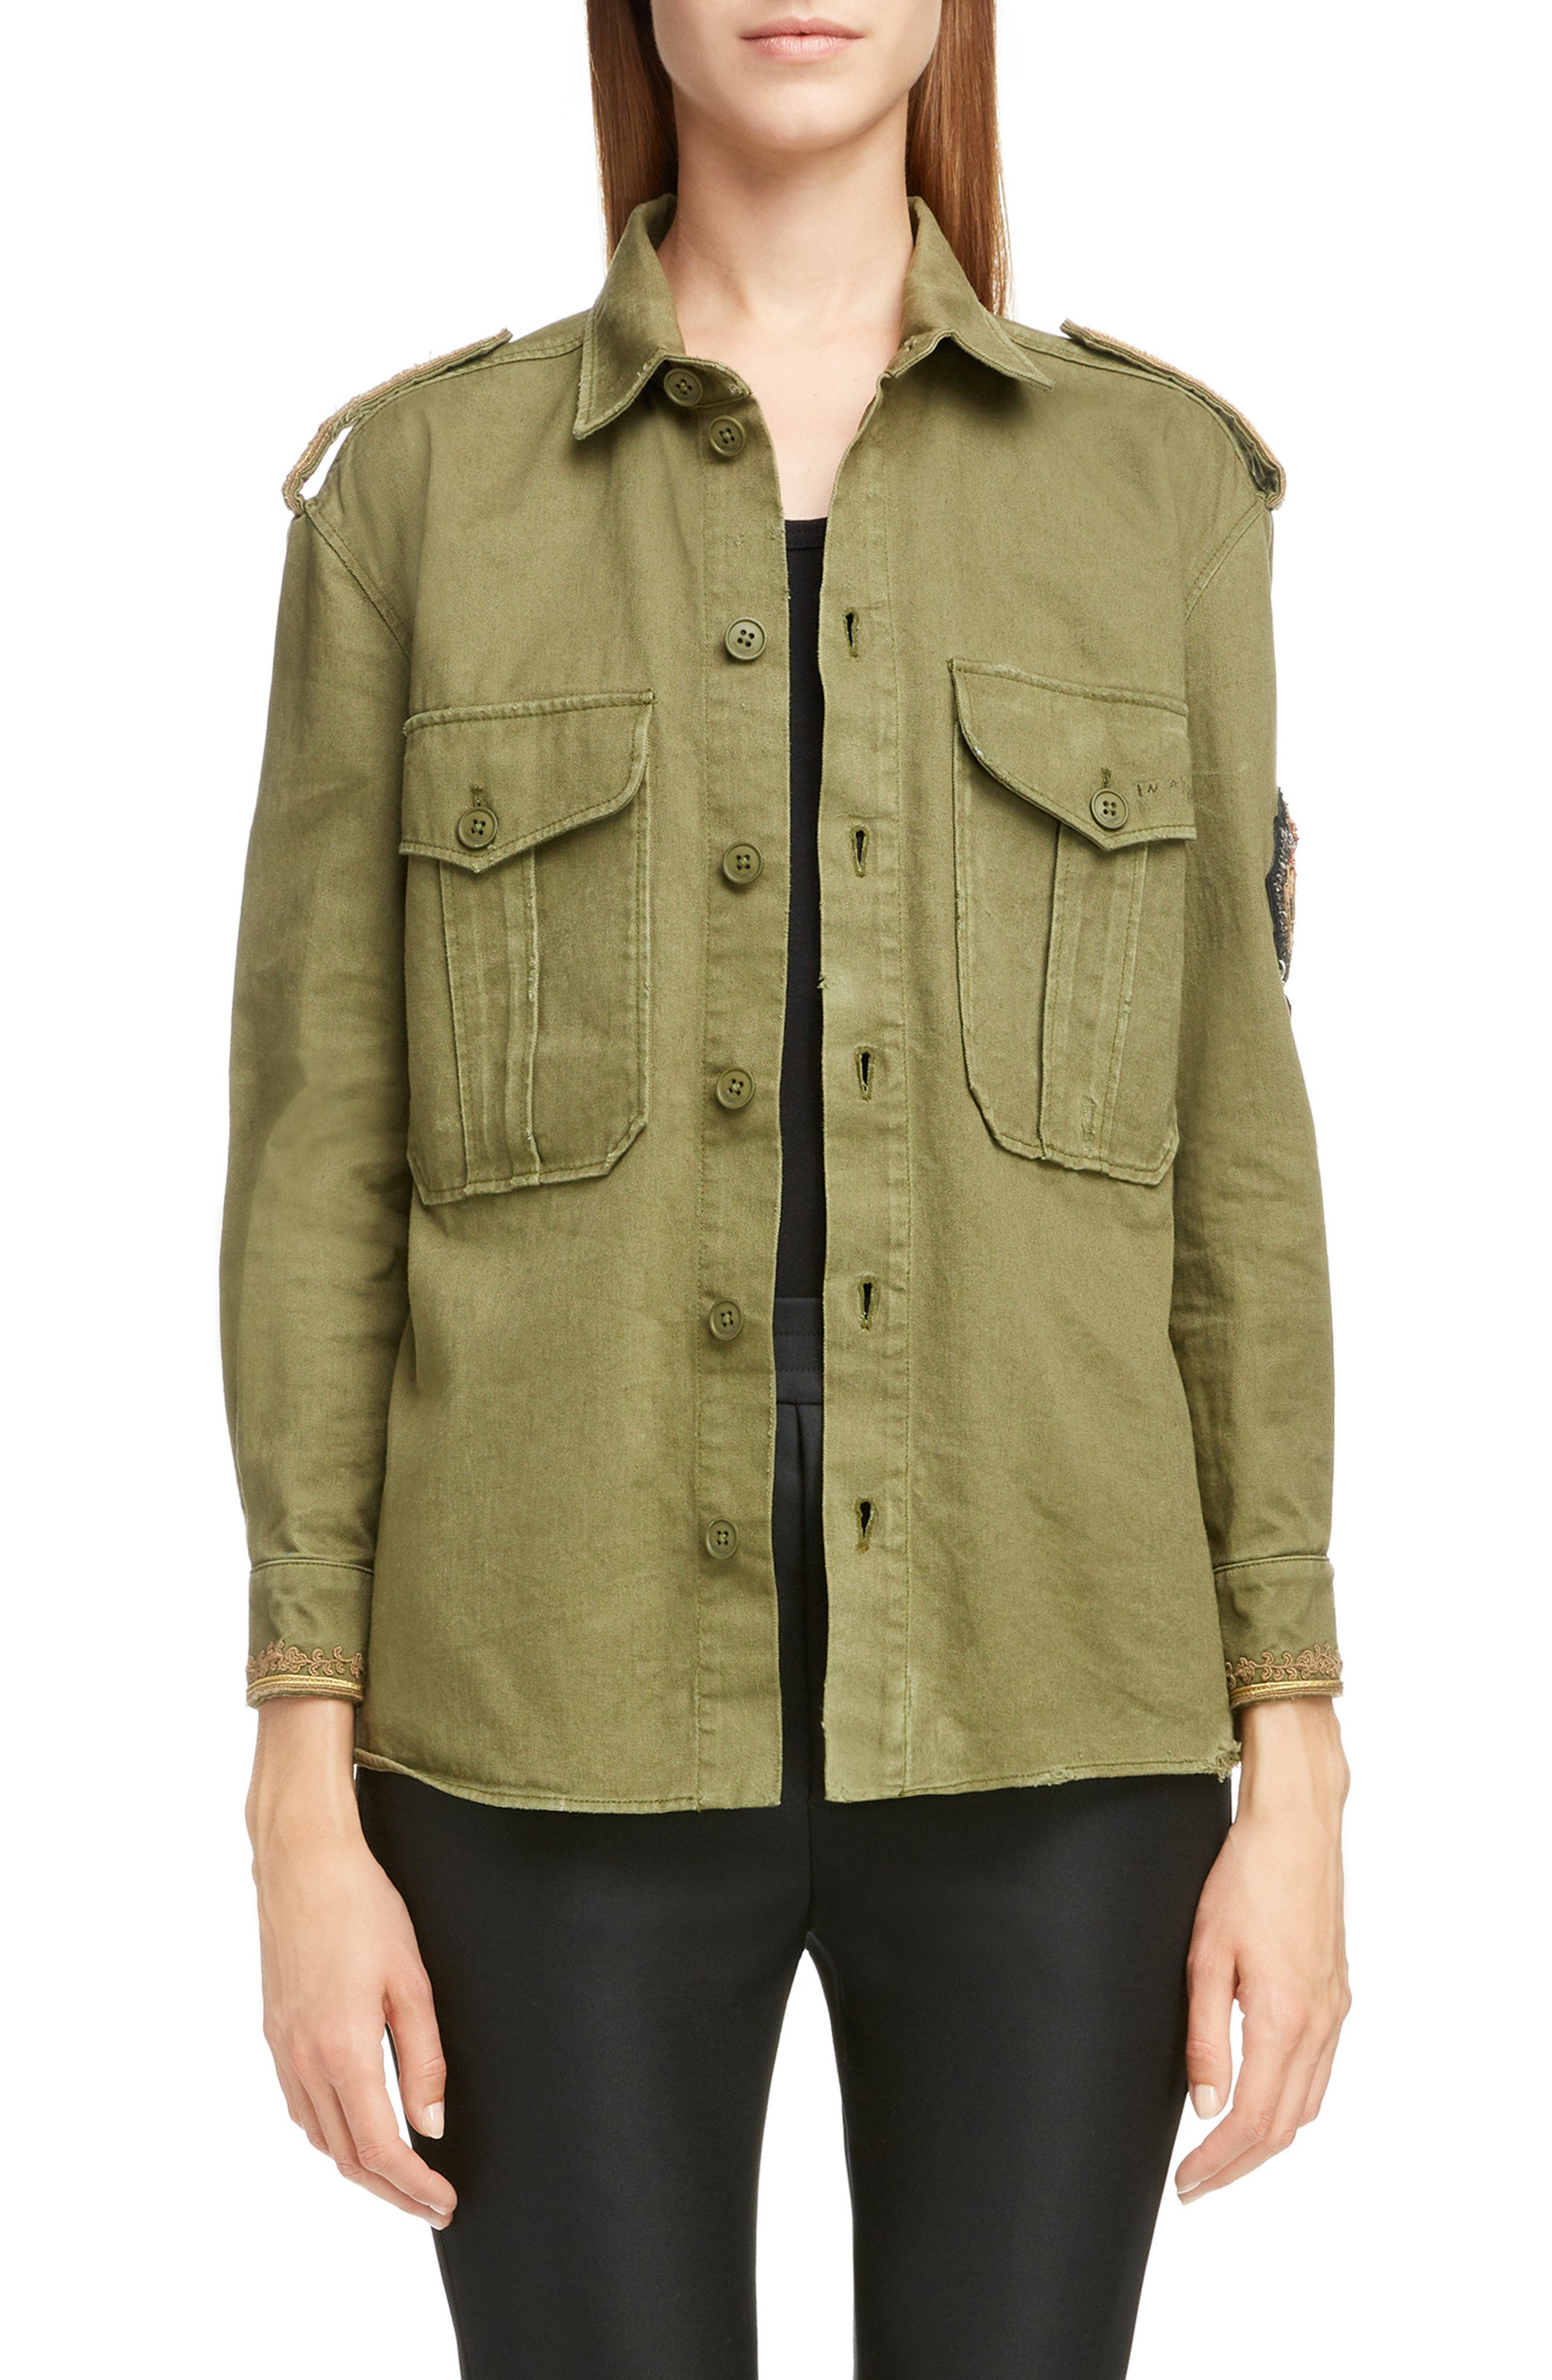 Military Patchwork Shirt Jacket in Olive